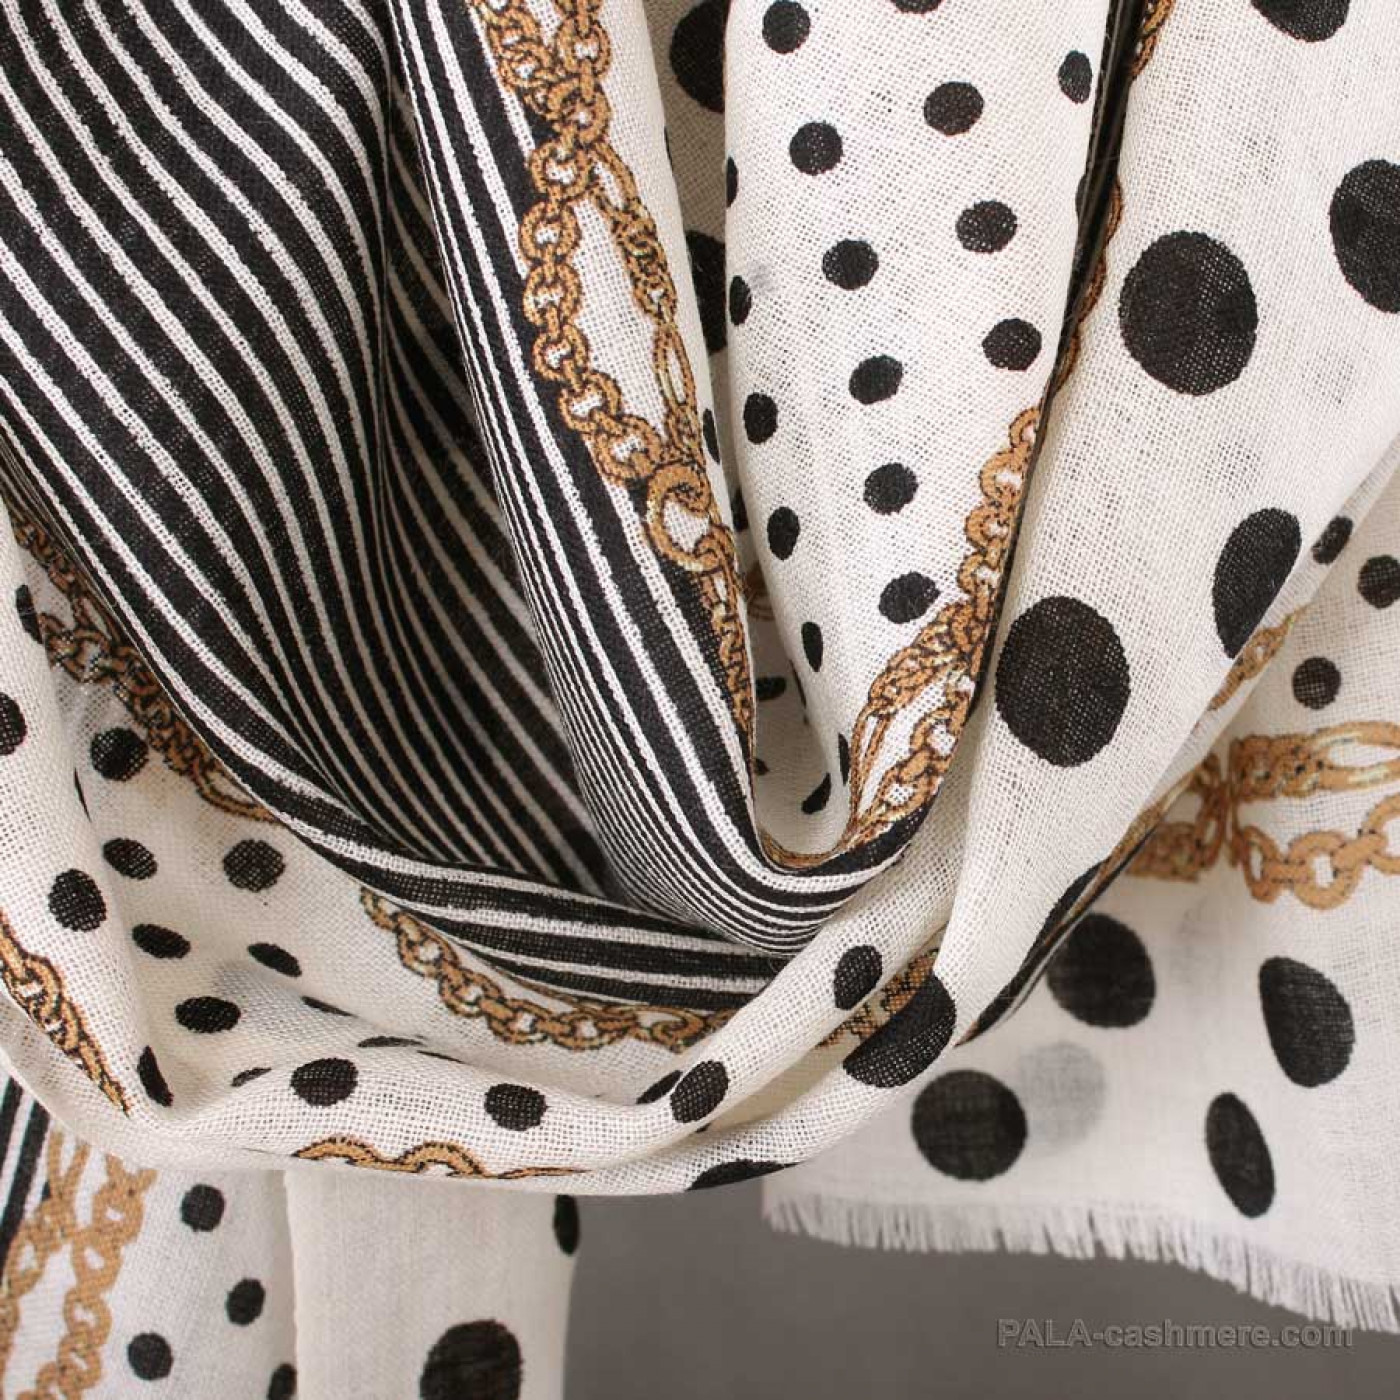 Stole with wool with a pattern of polka dots 65x180